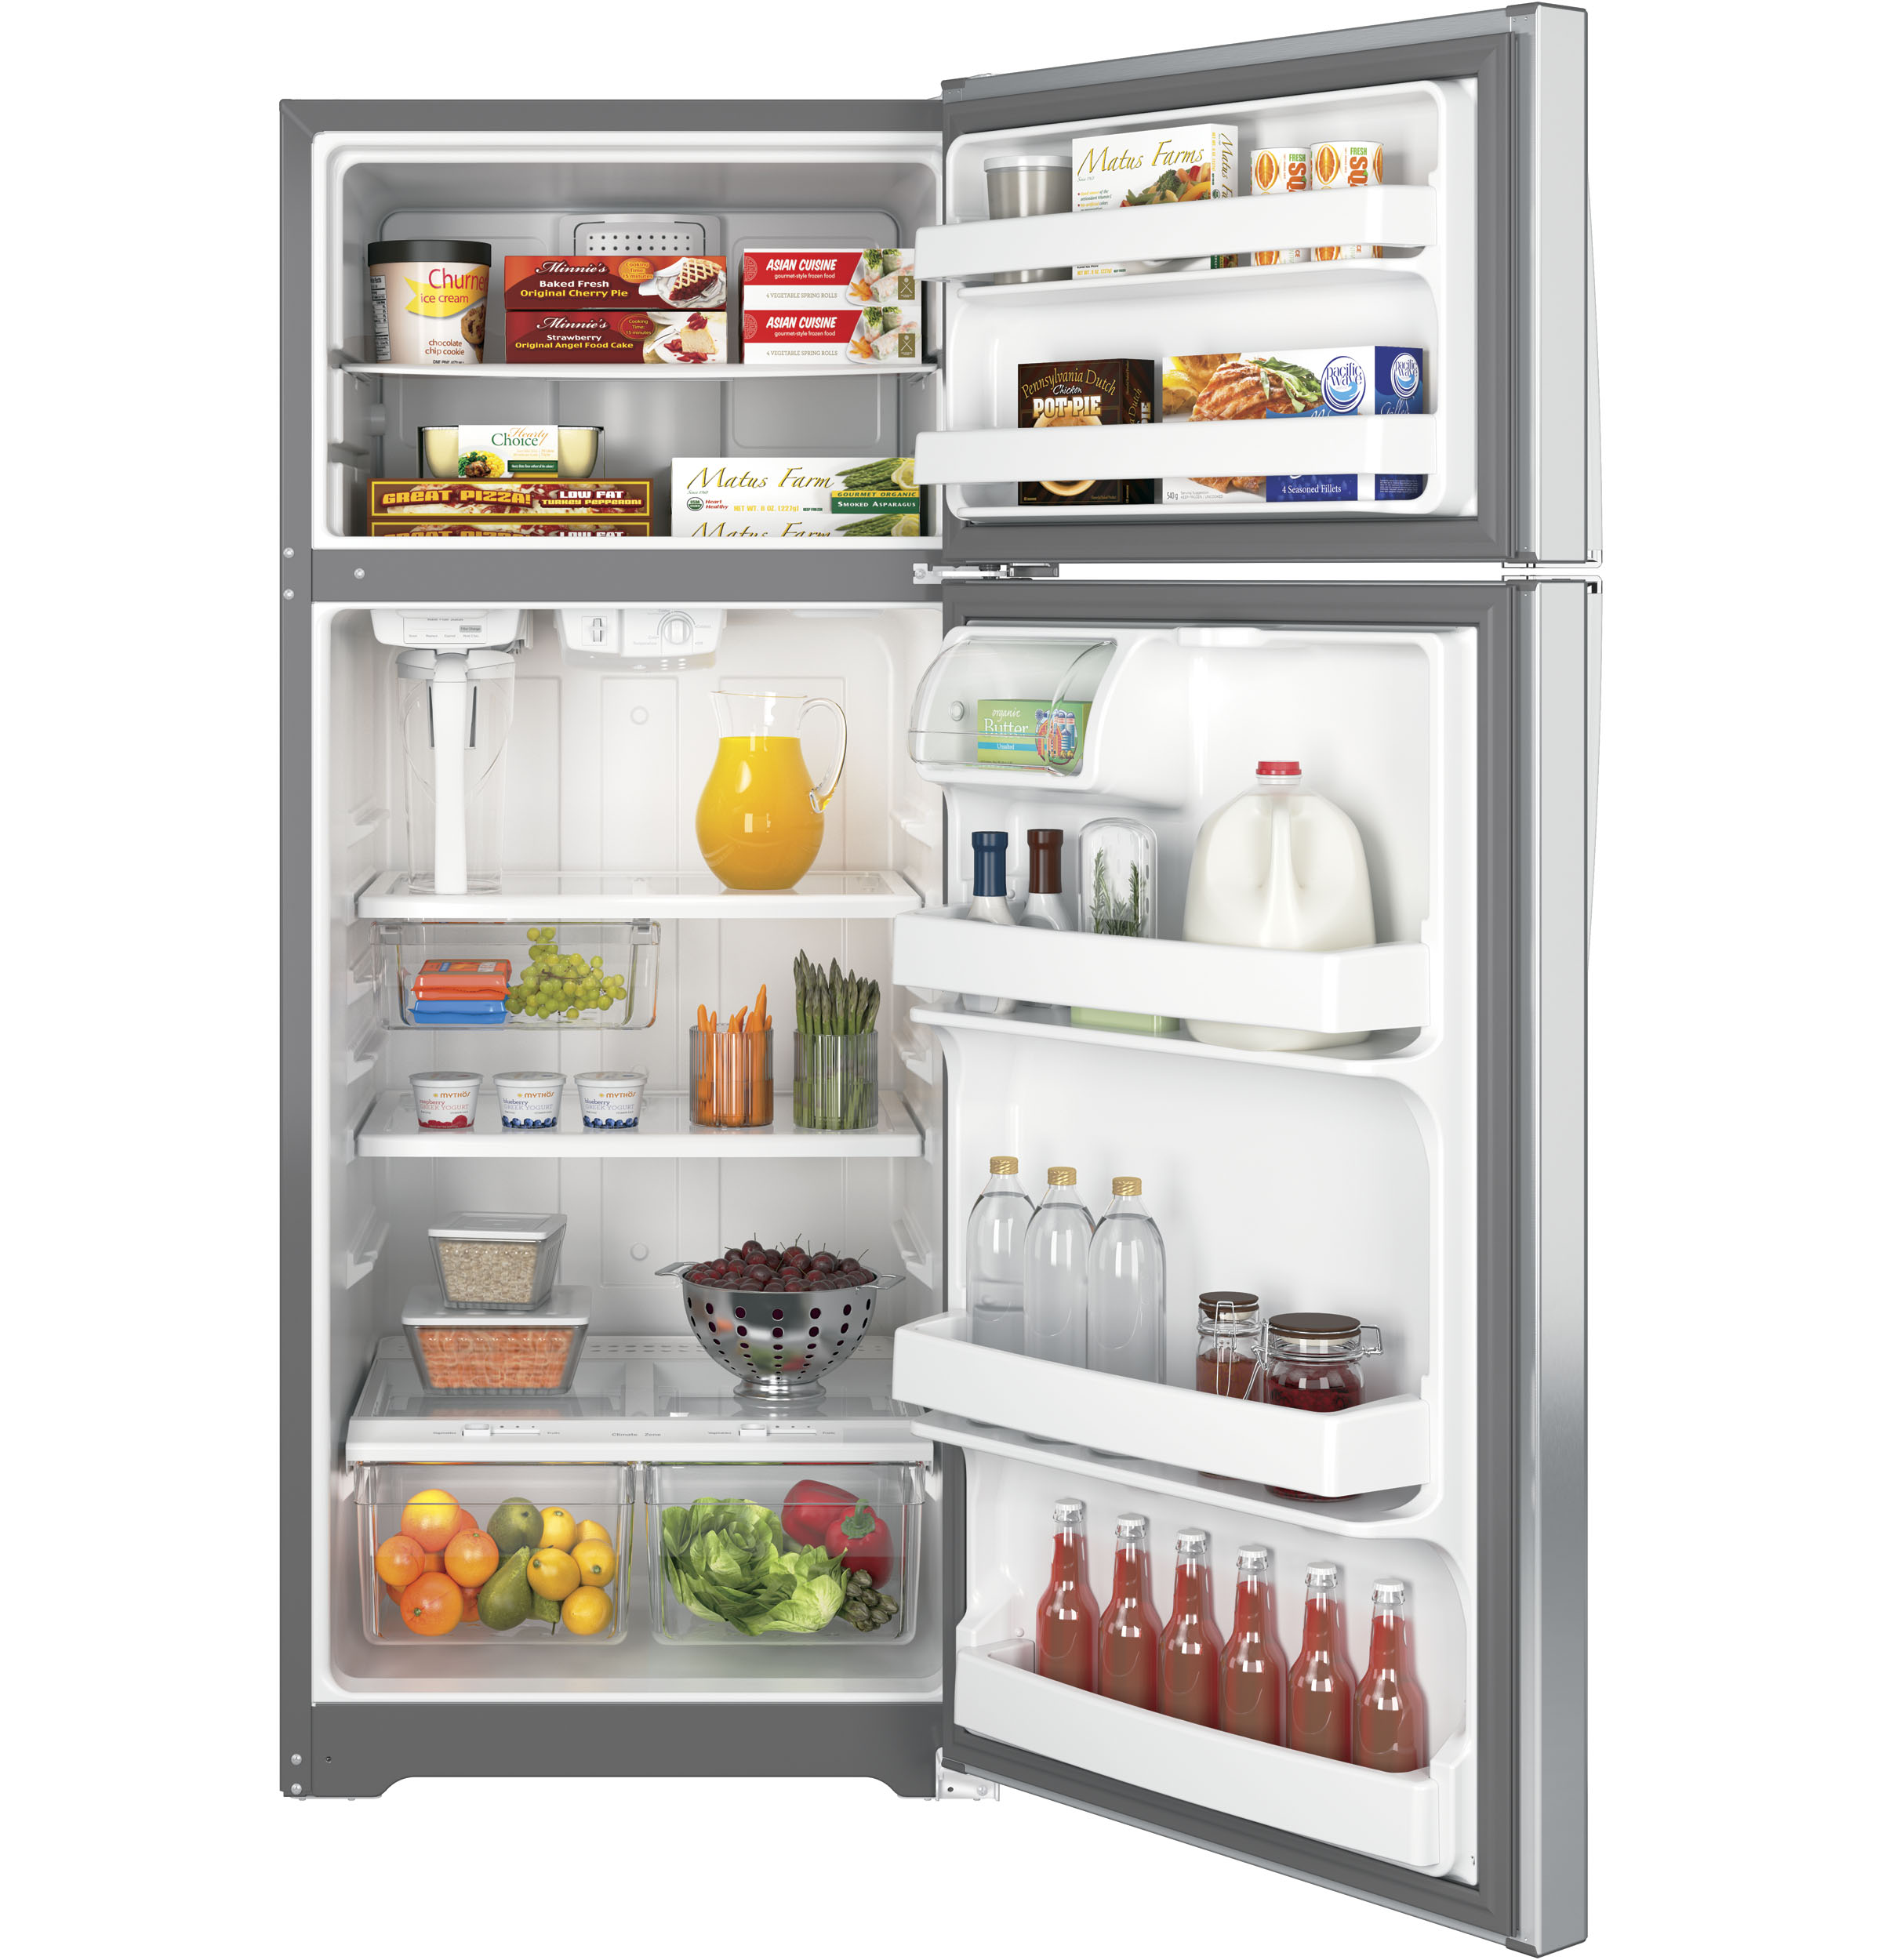 Free Picture Indoors Contemporary Stove Refrigerator: GE's New Autofill Pitcher Refrigerators Are Filled To The